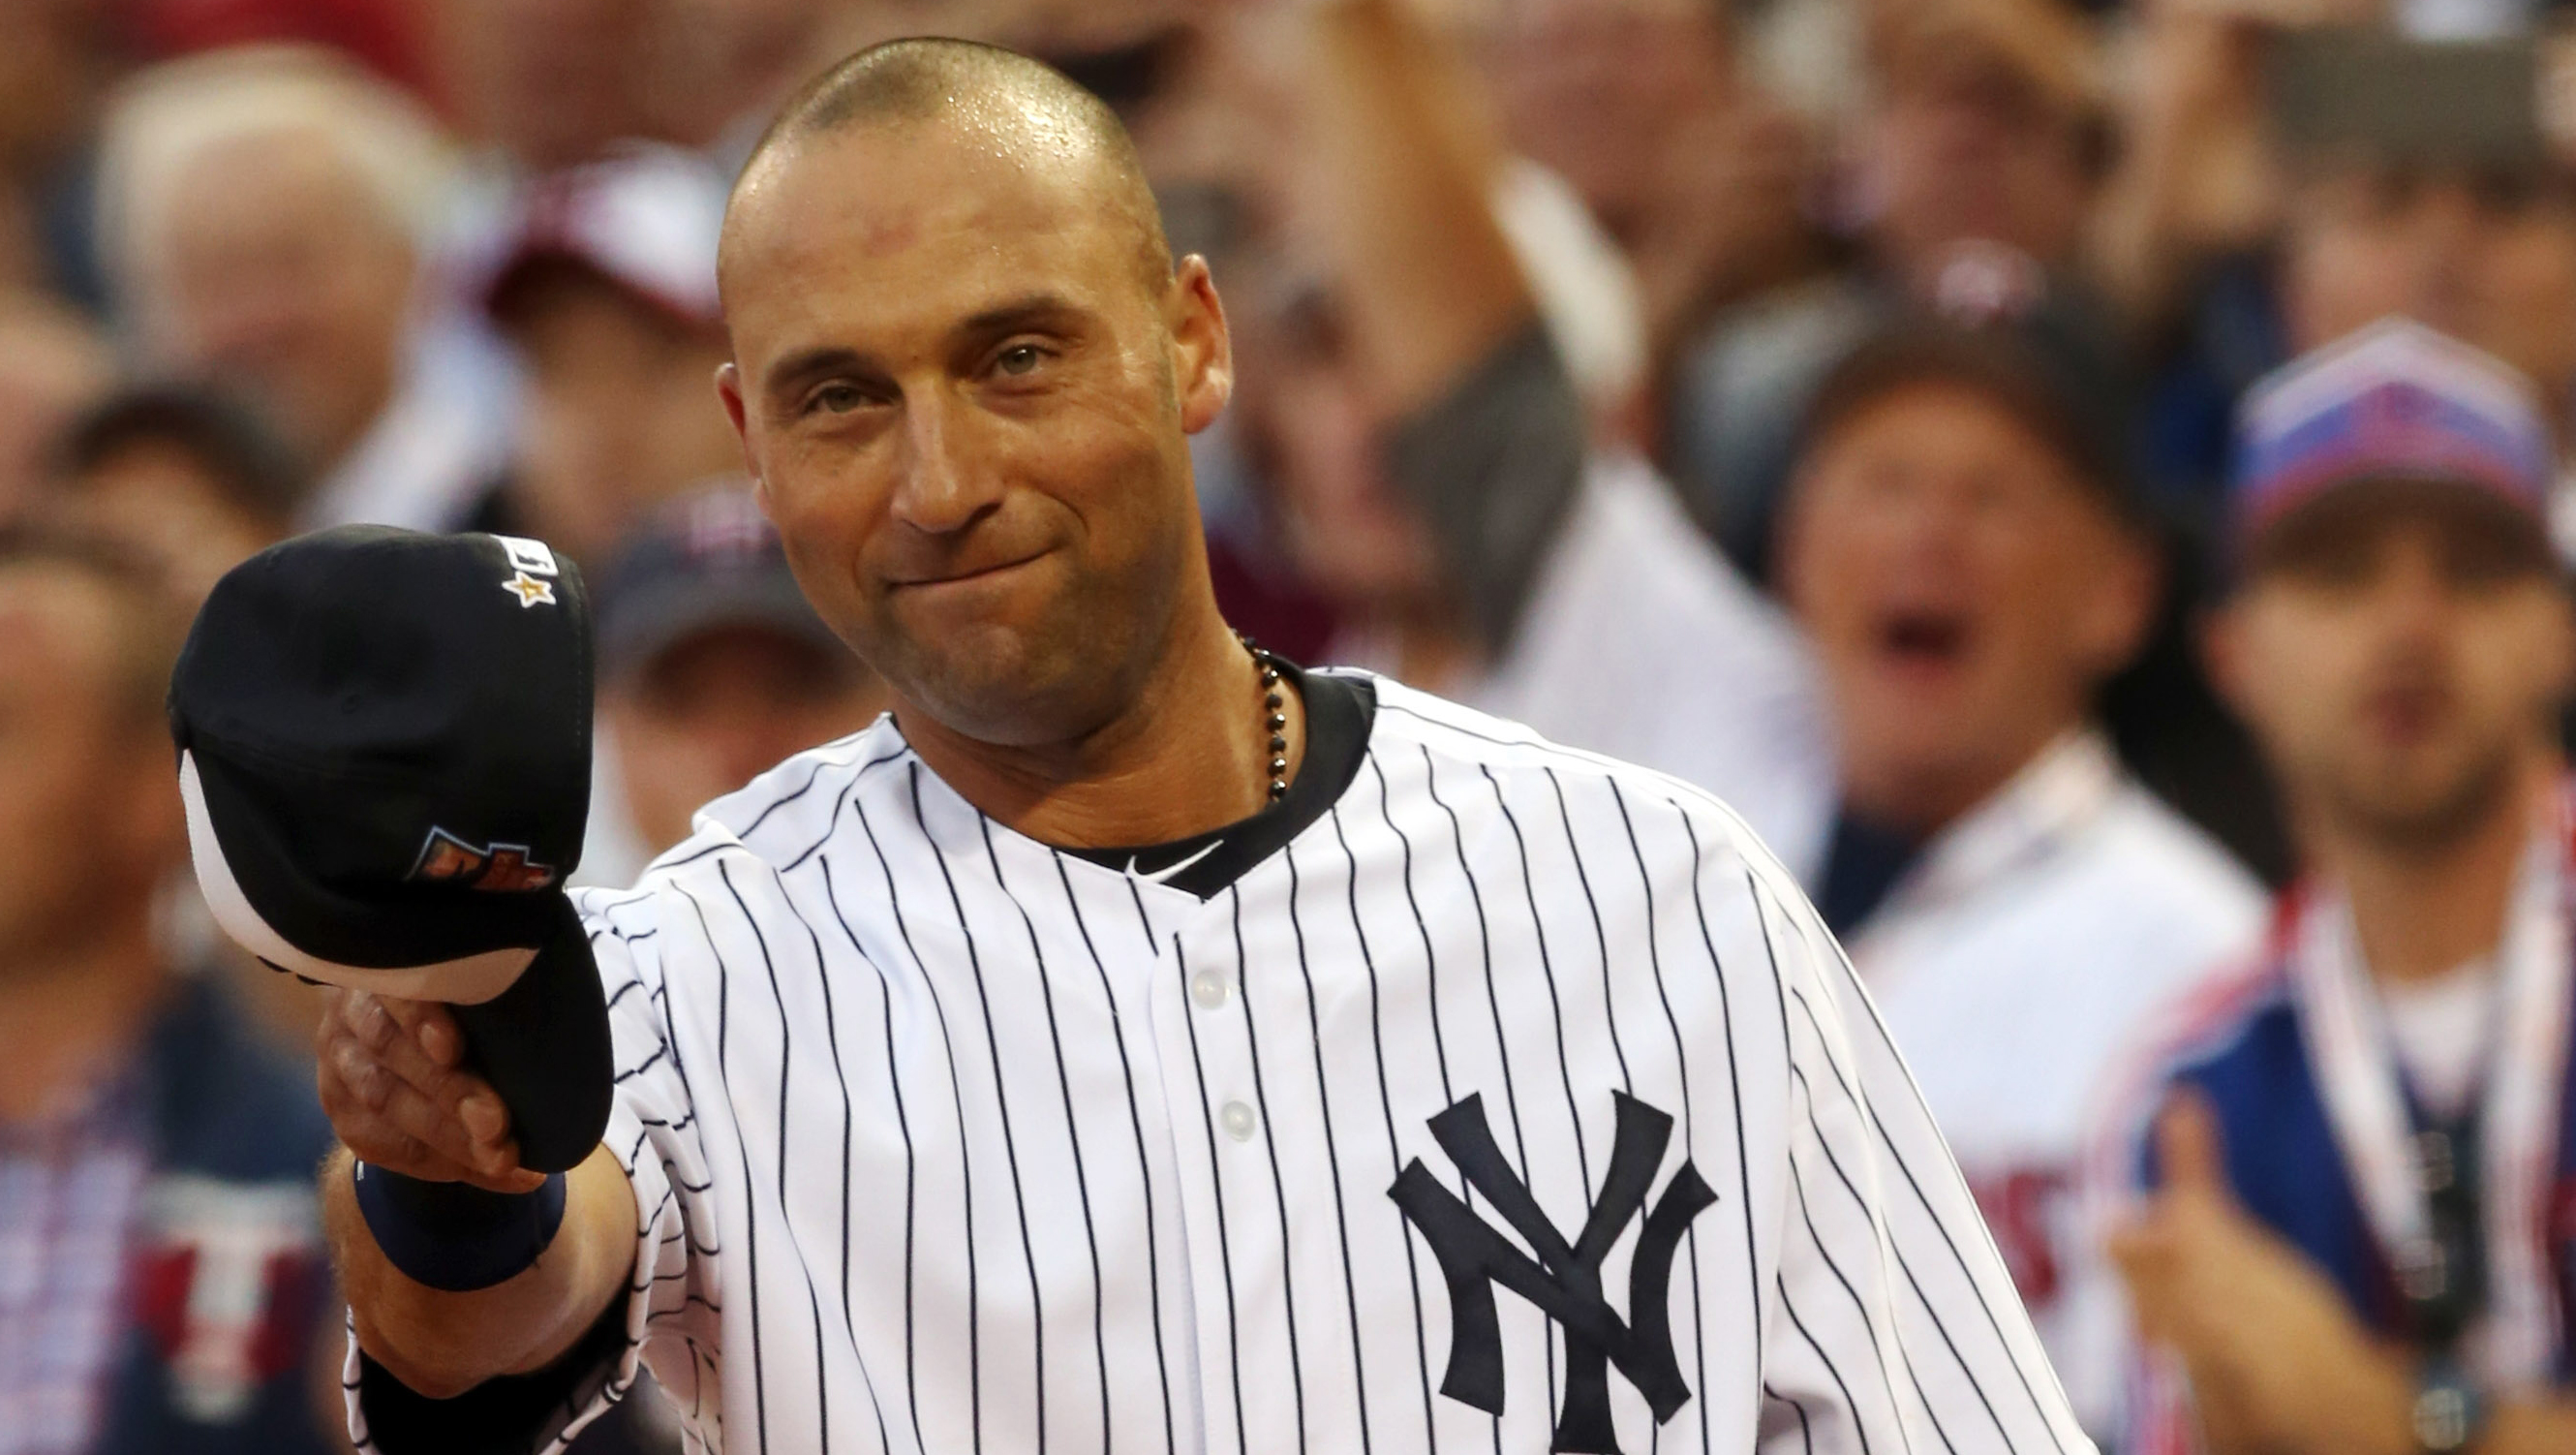 b163696c All-Star farewell: Jeter takes bow, hits double - CBS News